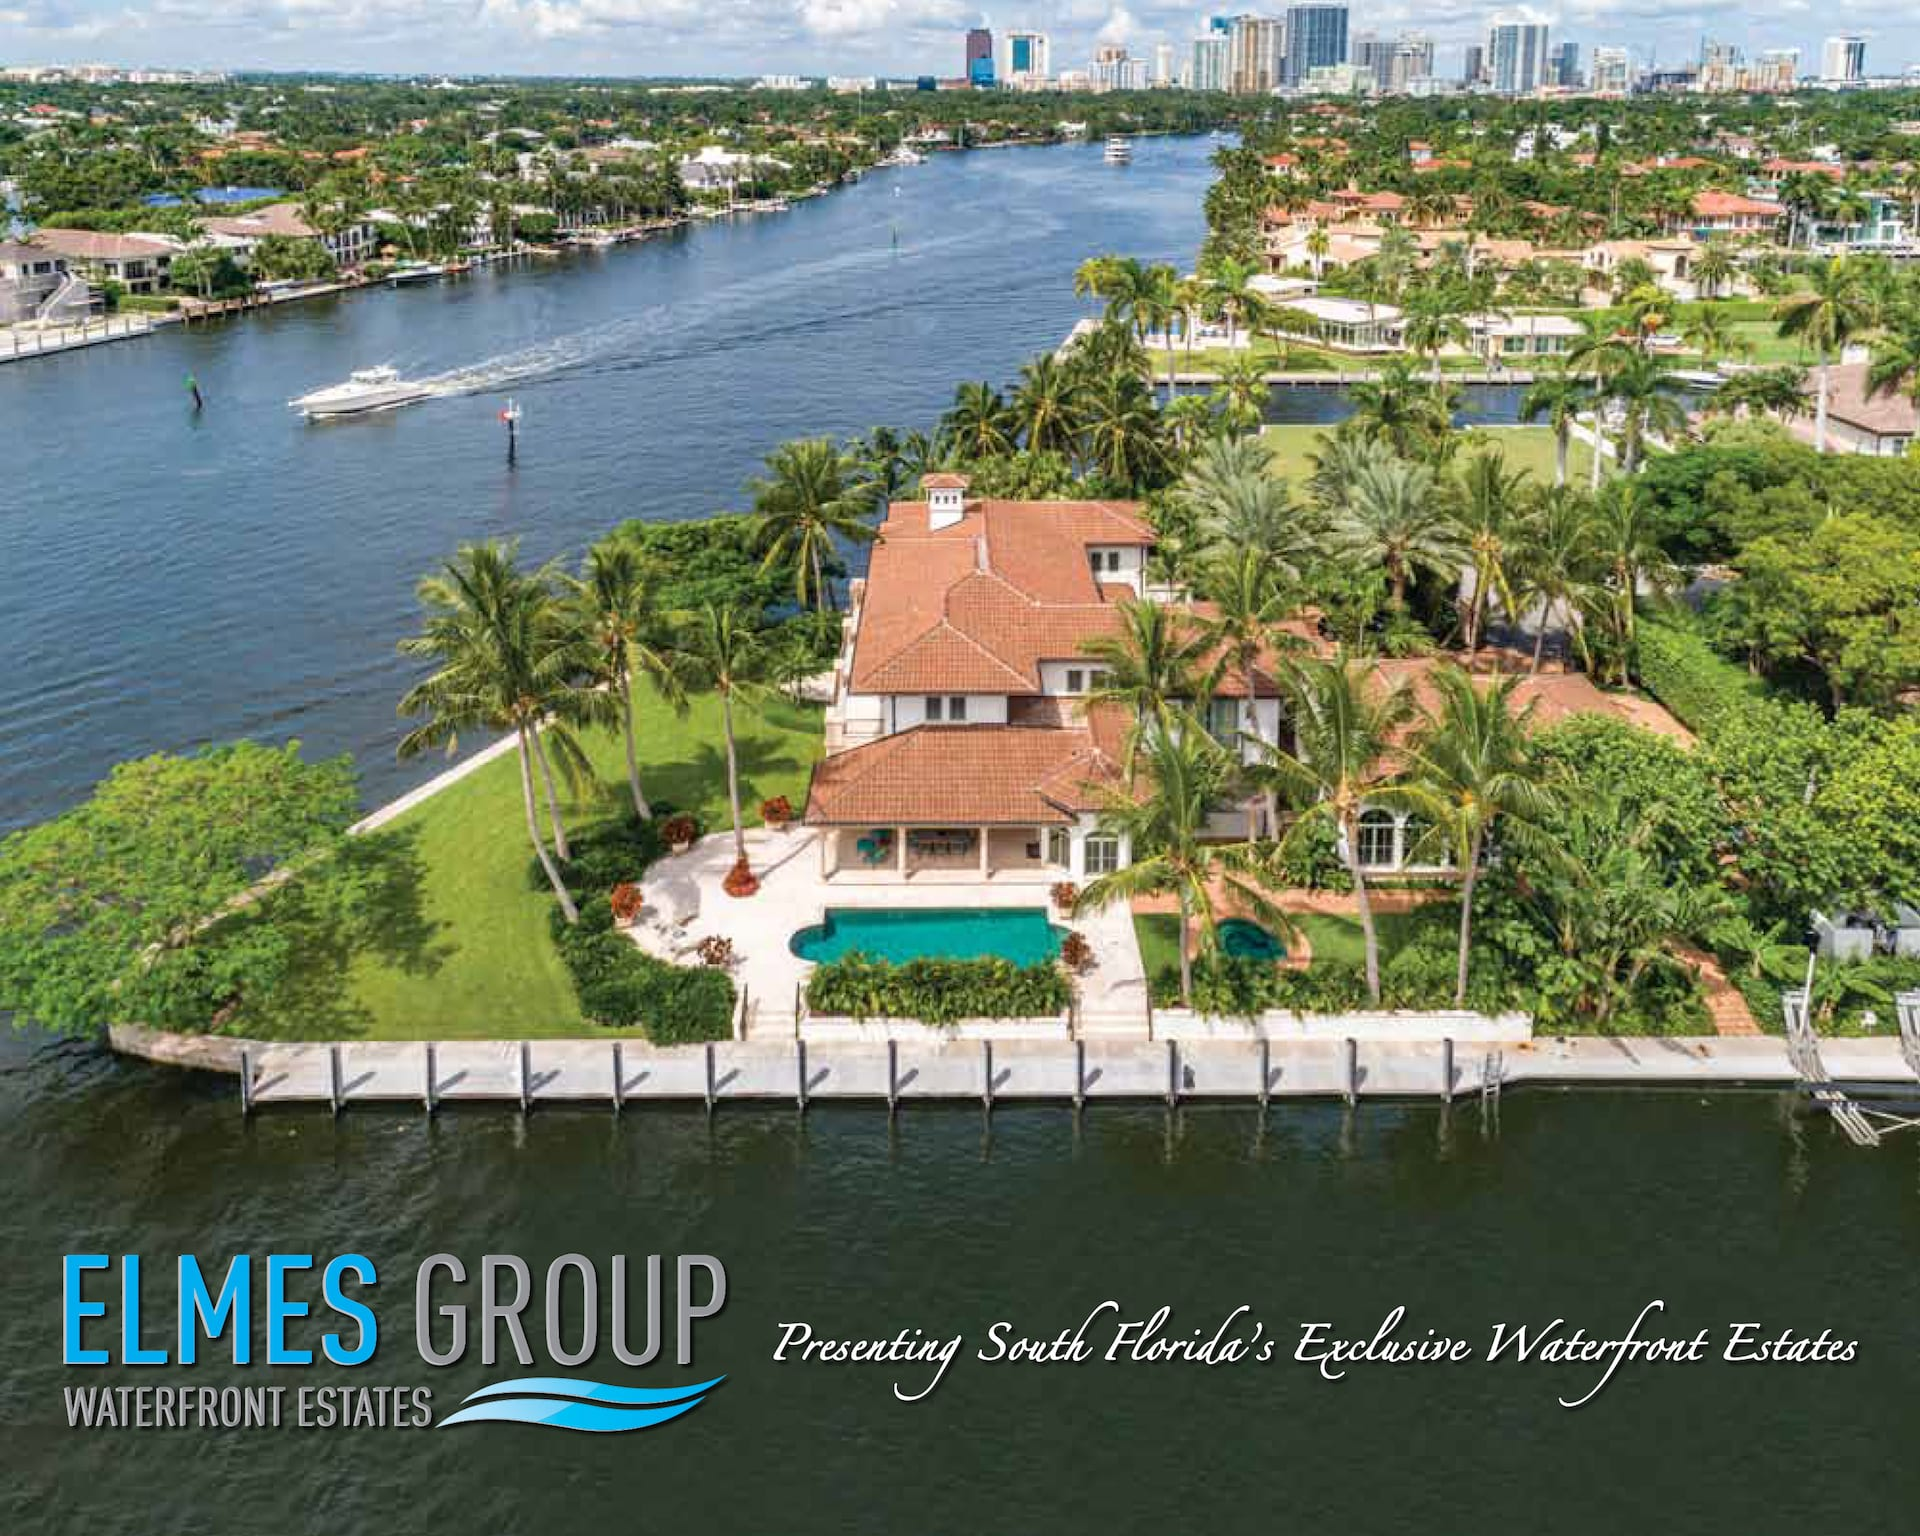 Presenting South Florida's Exclusive Waterfront Estates